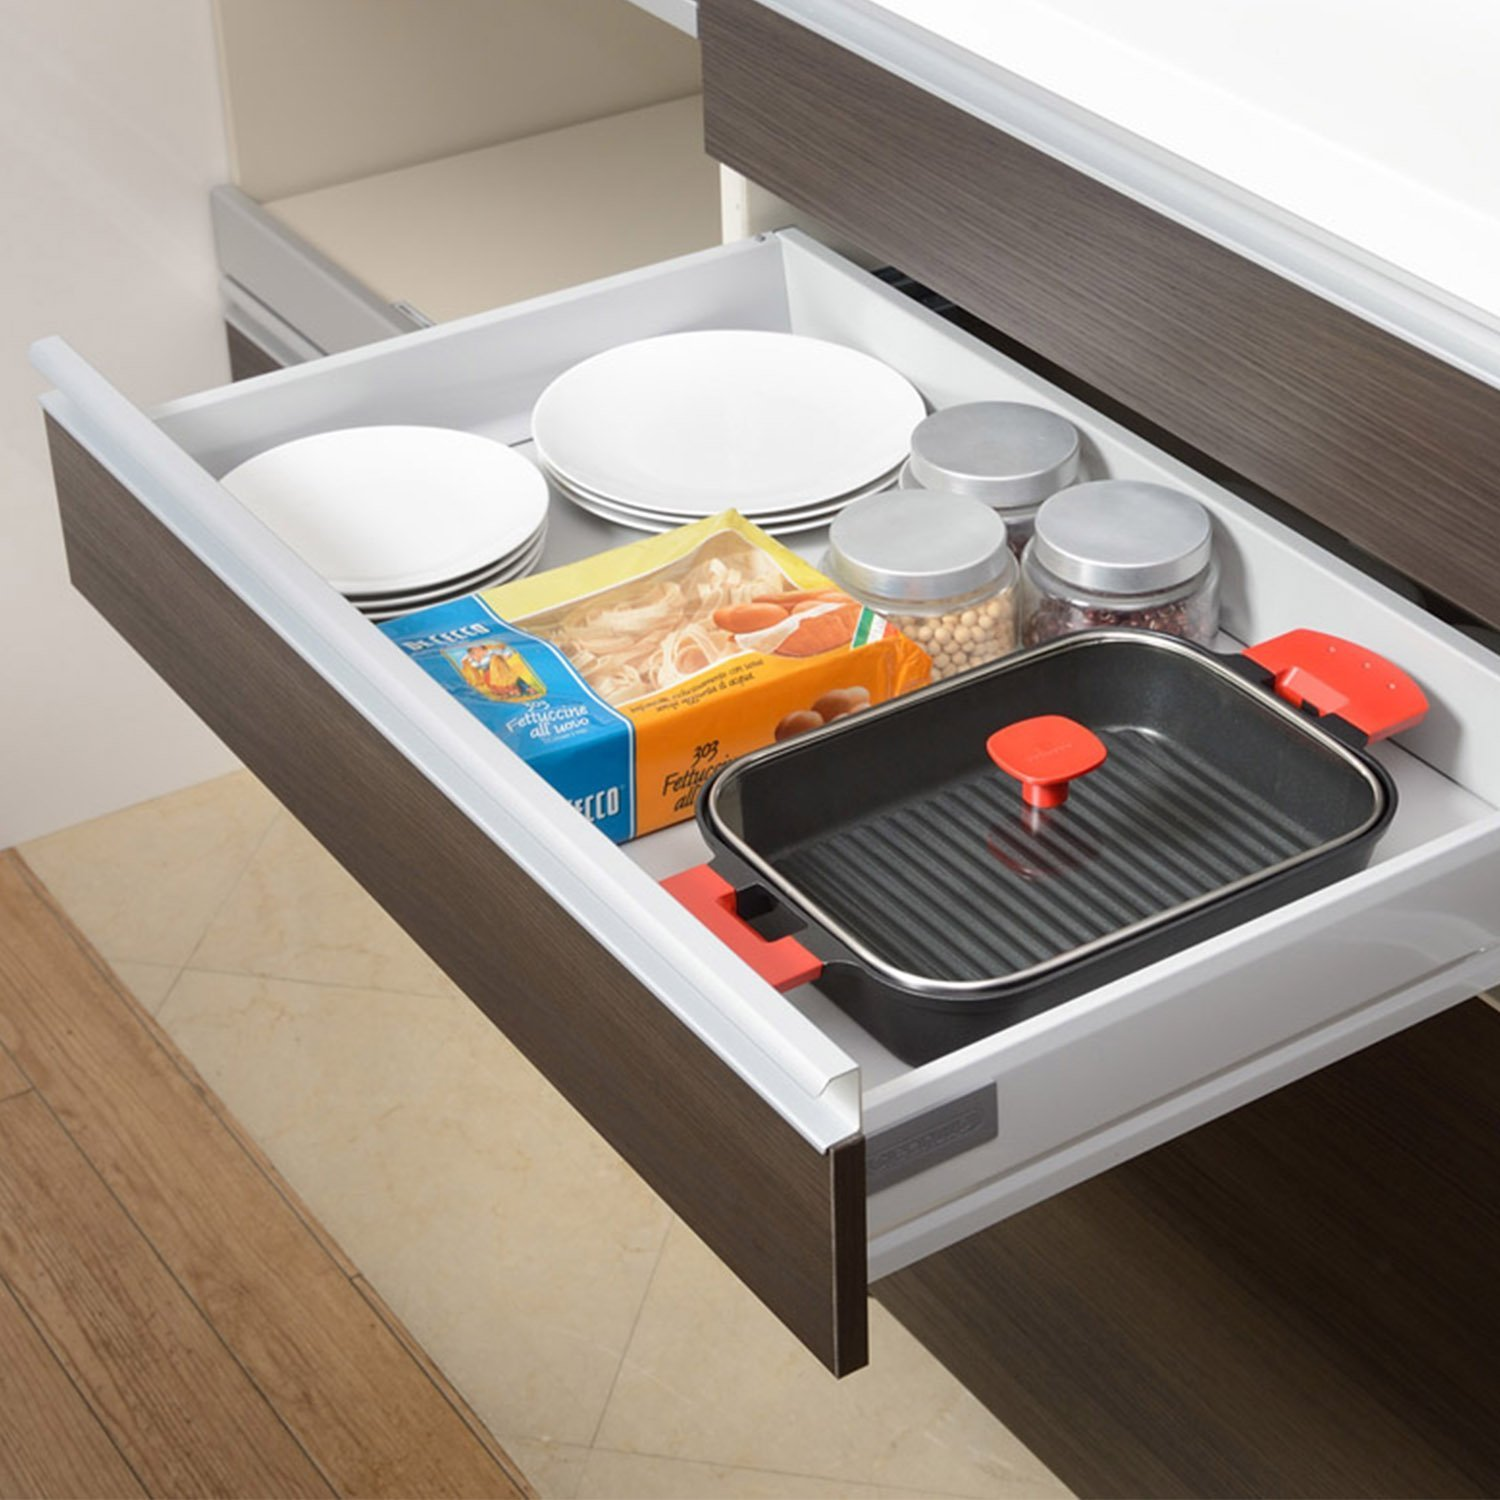 UchiCook 60-1016-05 Steam Grill with Glass Cover, Black by Sikura (Image #4)